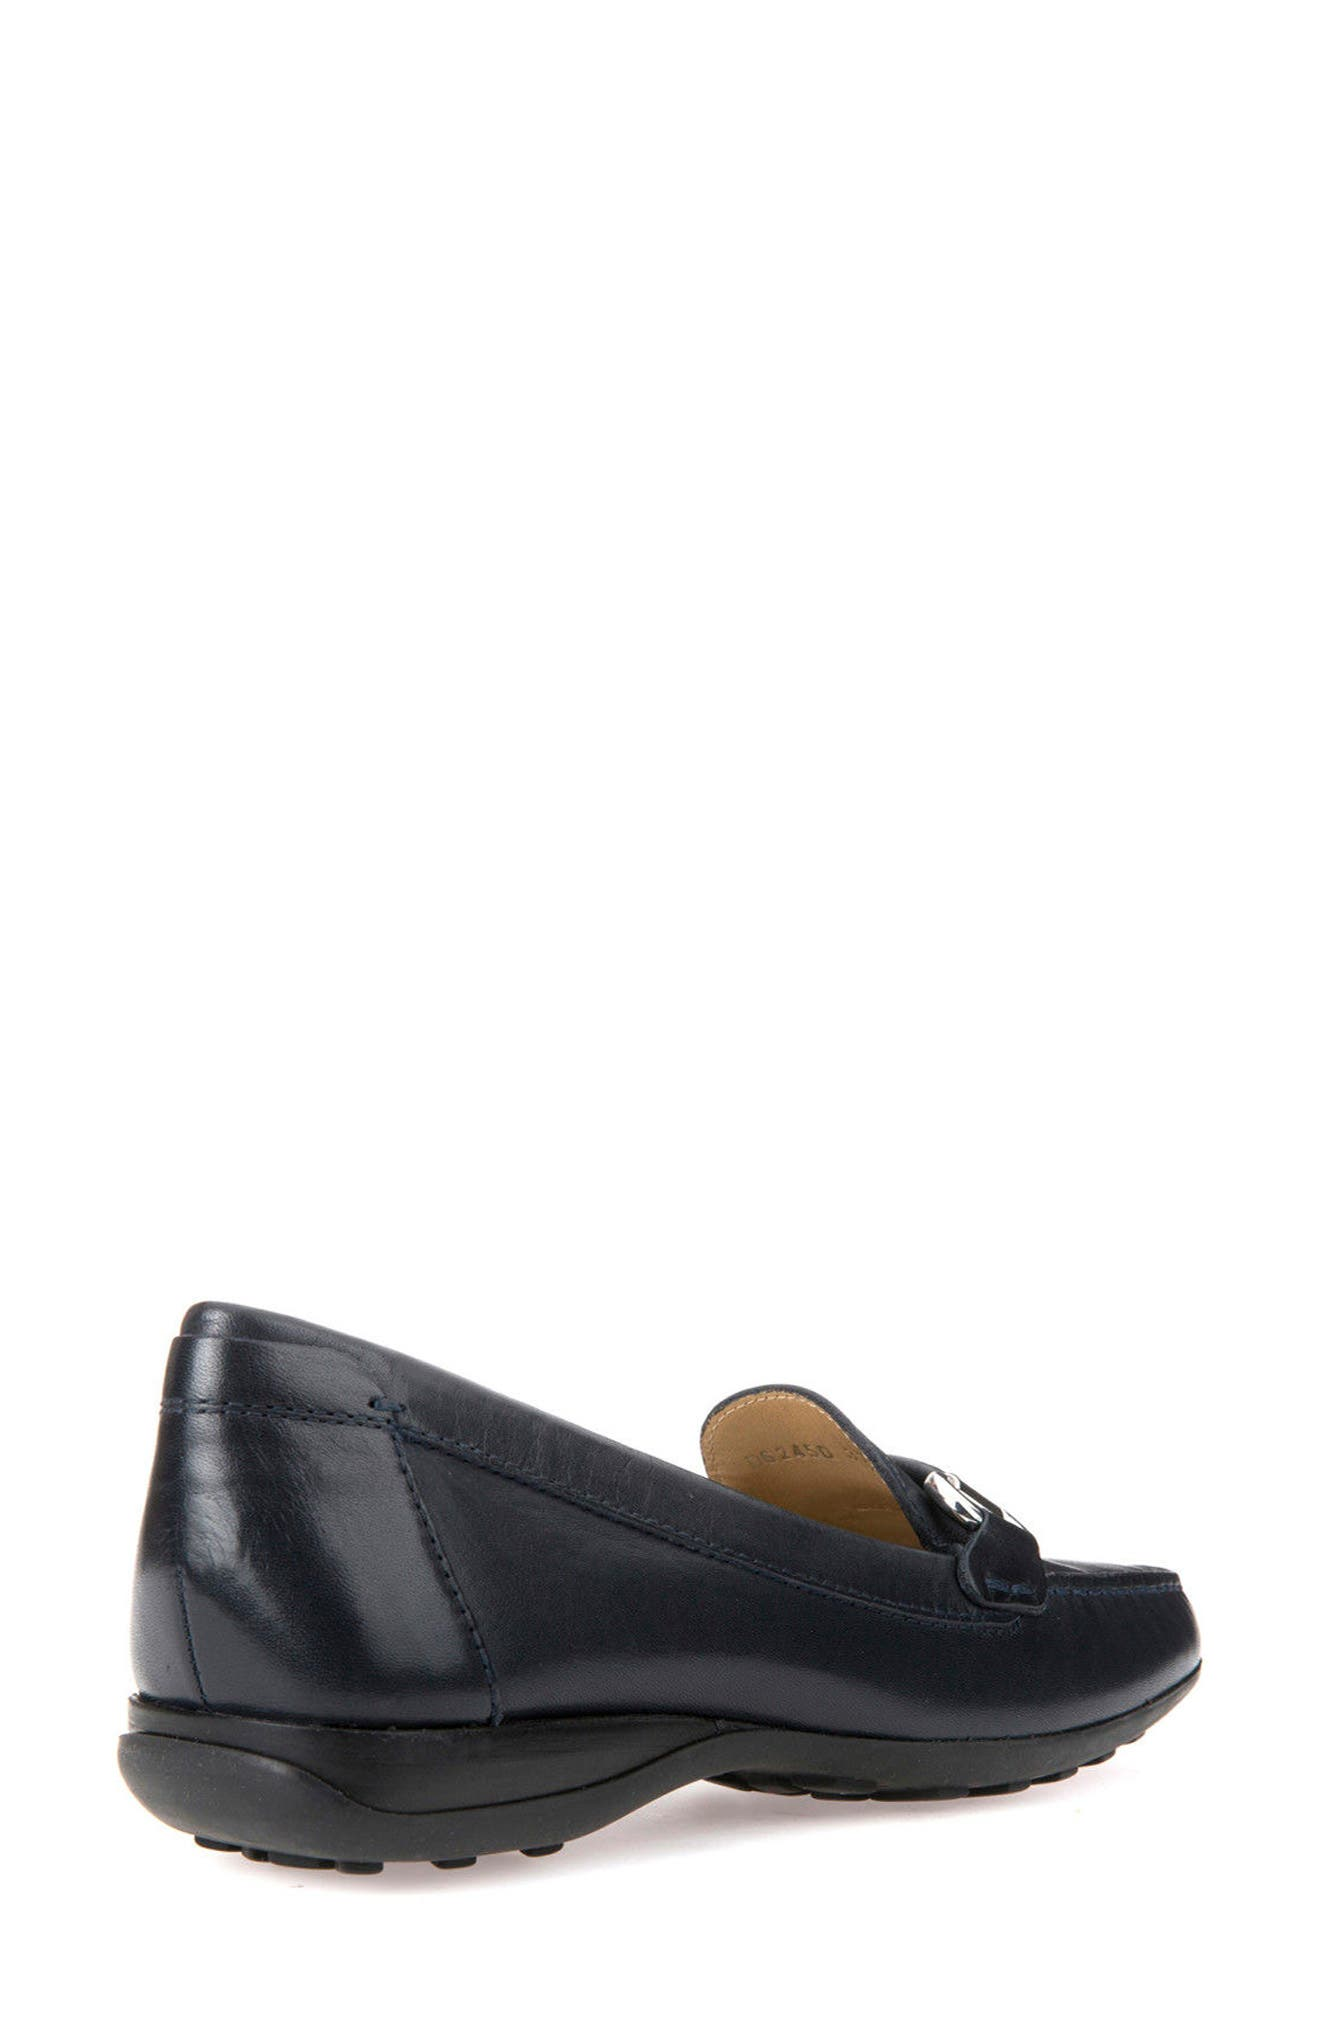 Euro 67 Loafer,                             Alternate thumbnail 11, color,